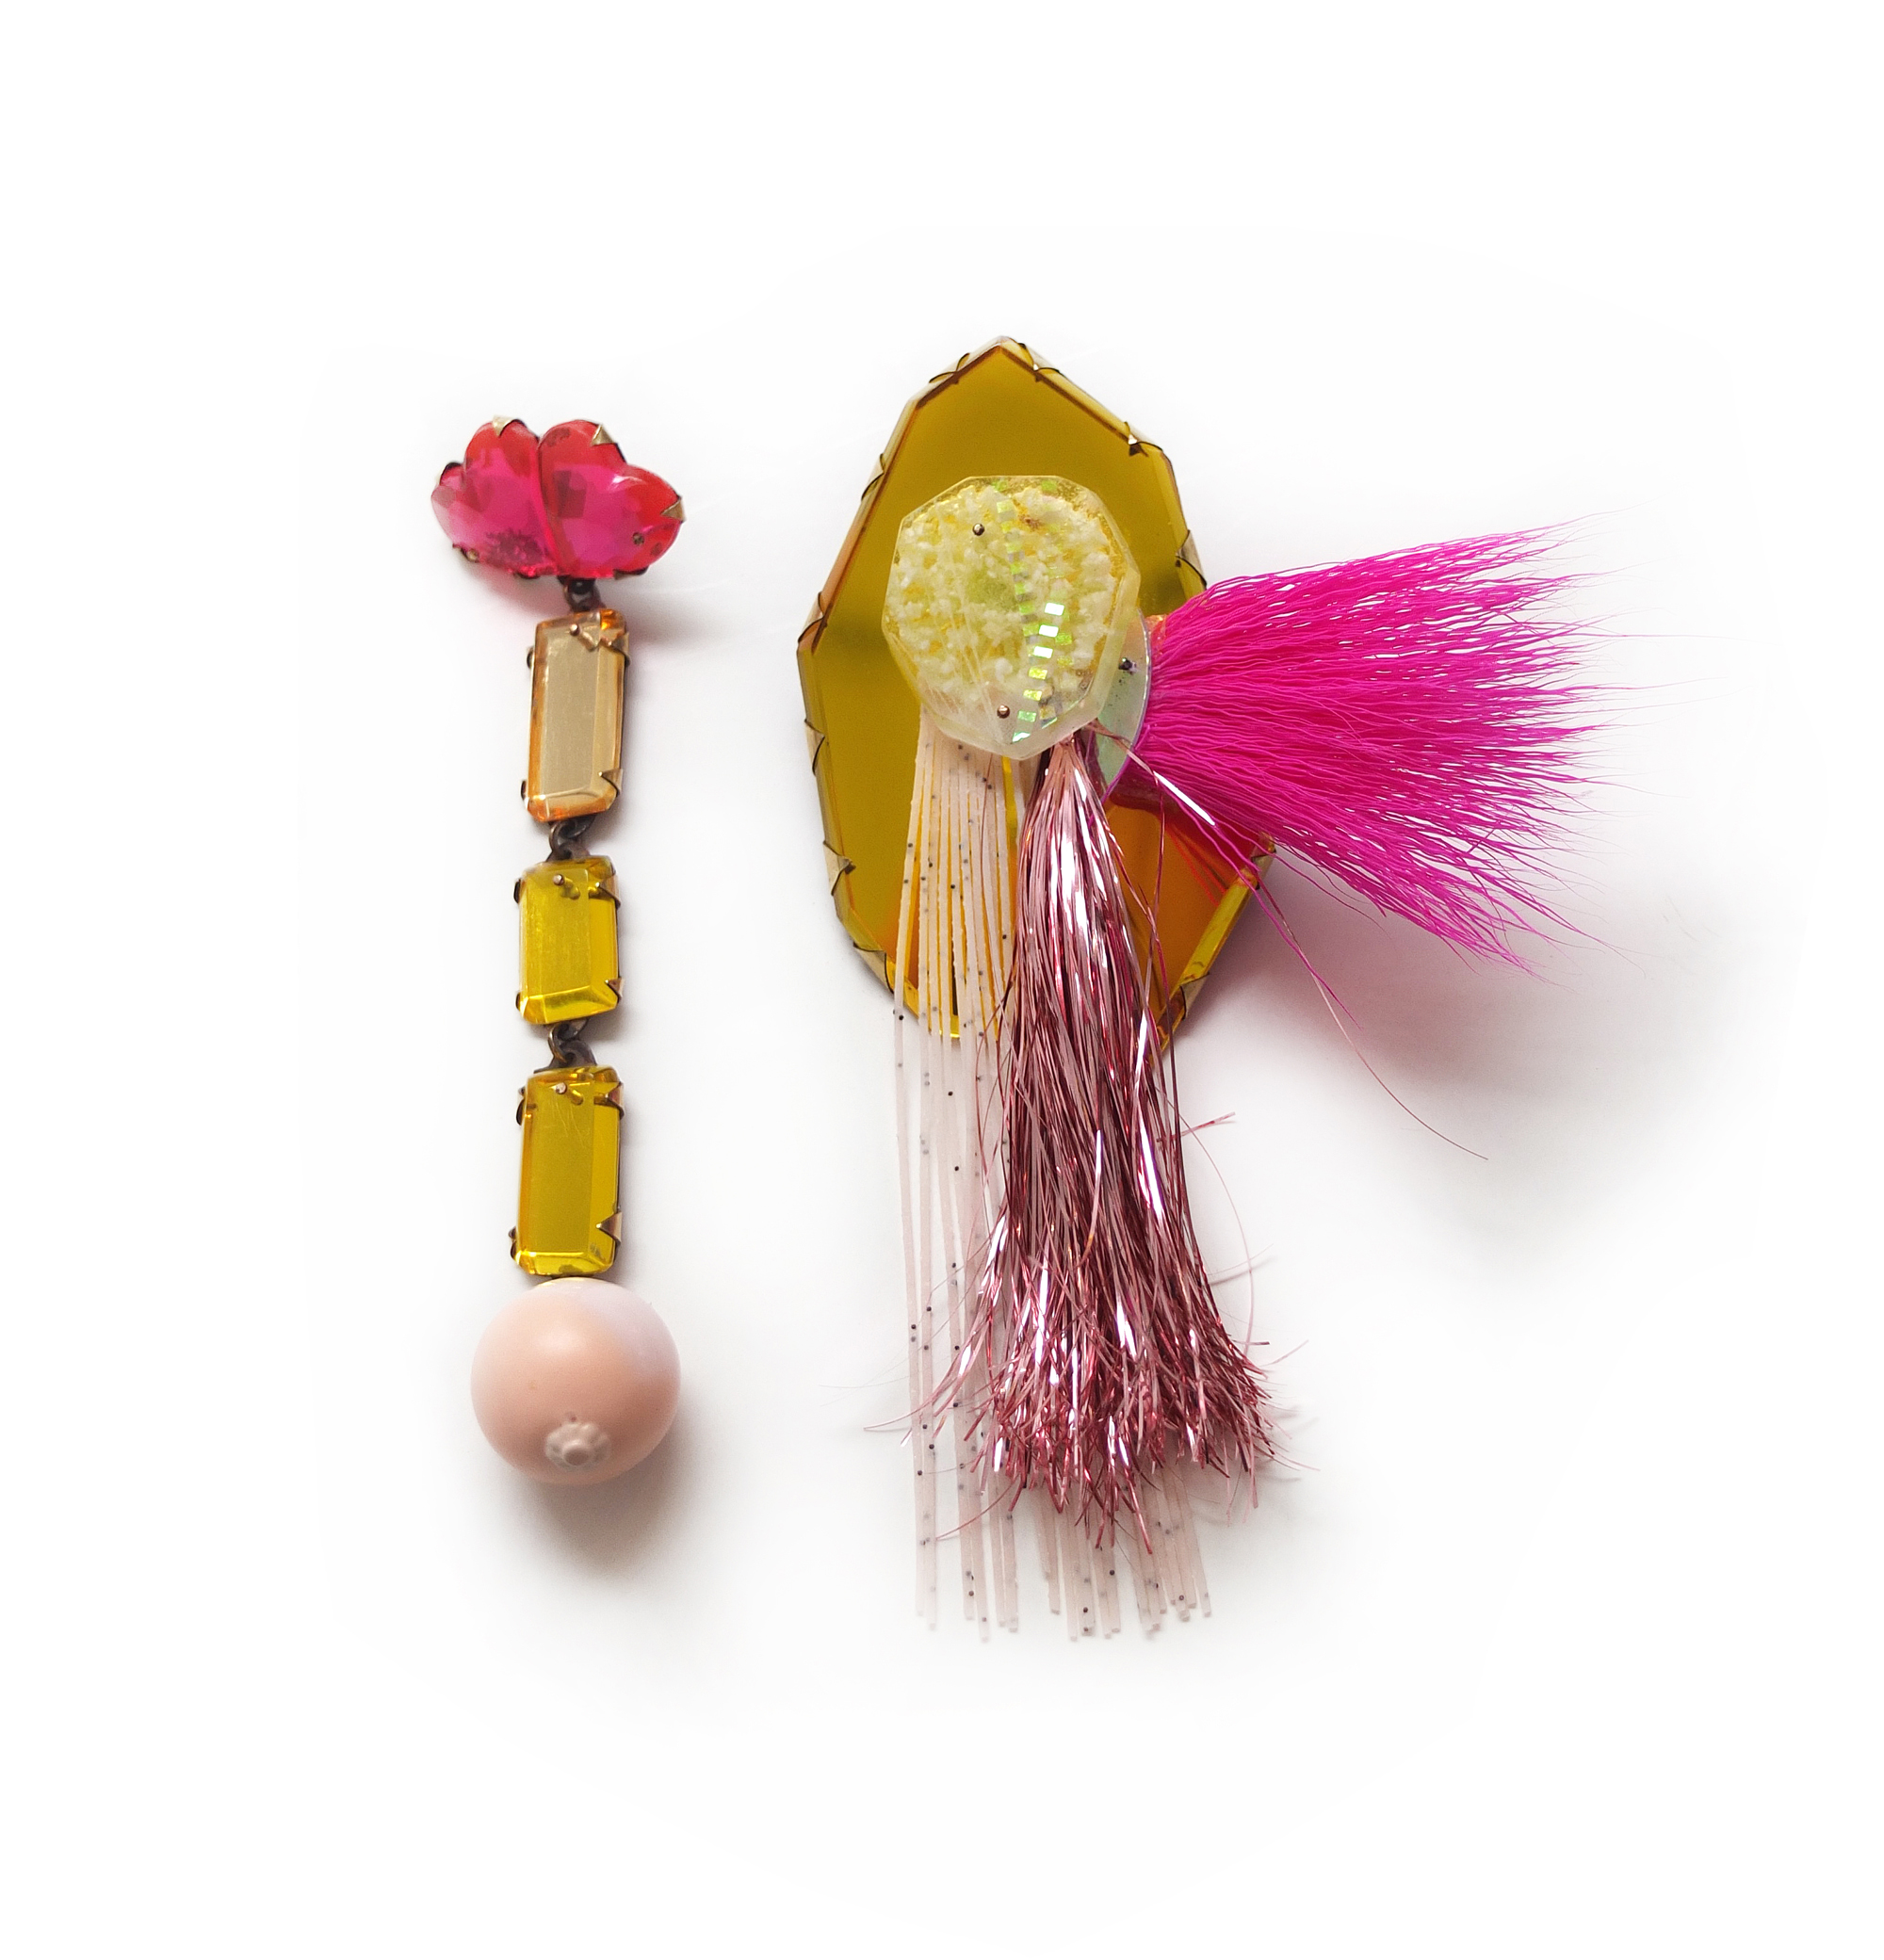 Nikki Couppee, Troll Hair Fringe Earrings, Plexiglass, brass, sterling silver, fine silver, found objects